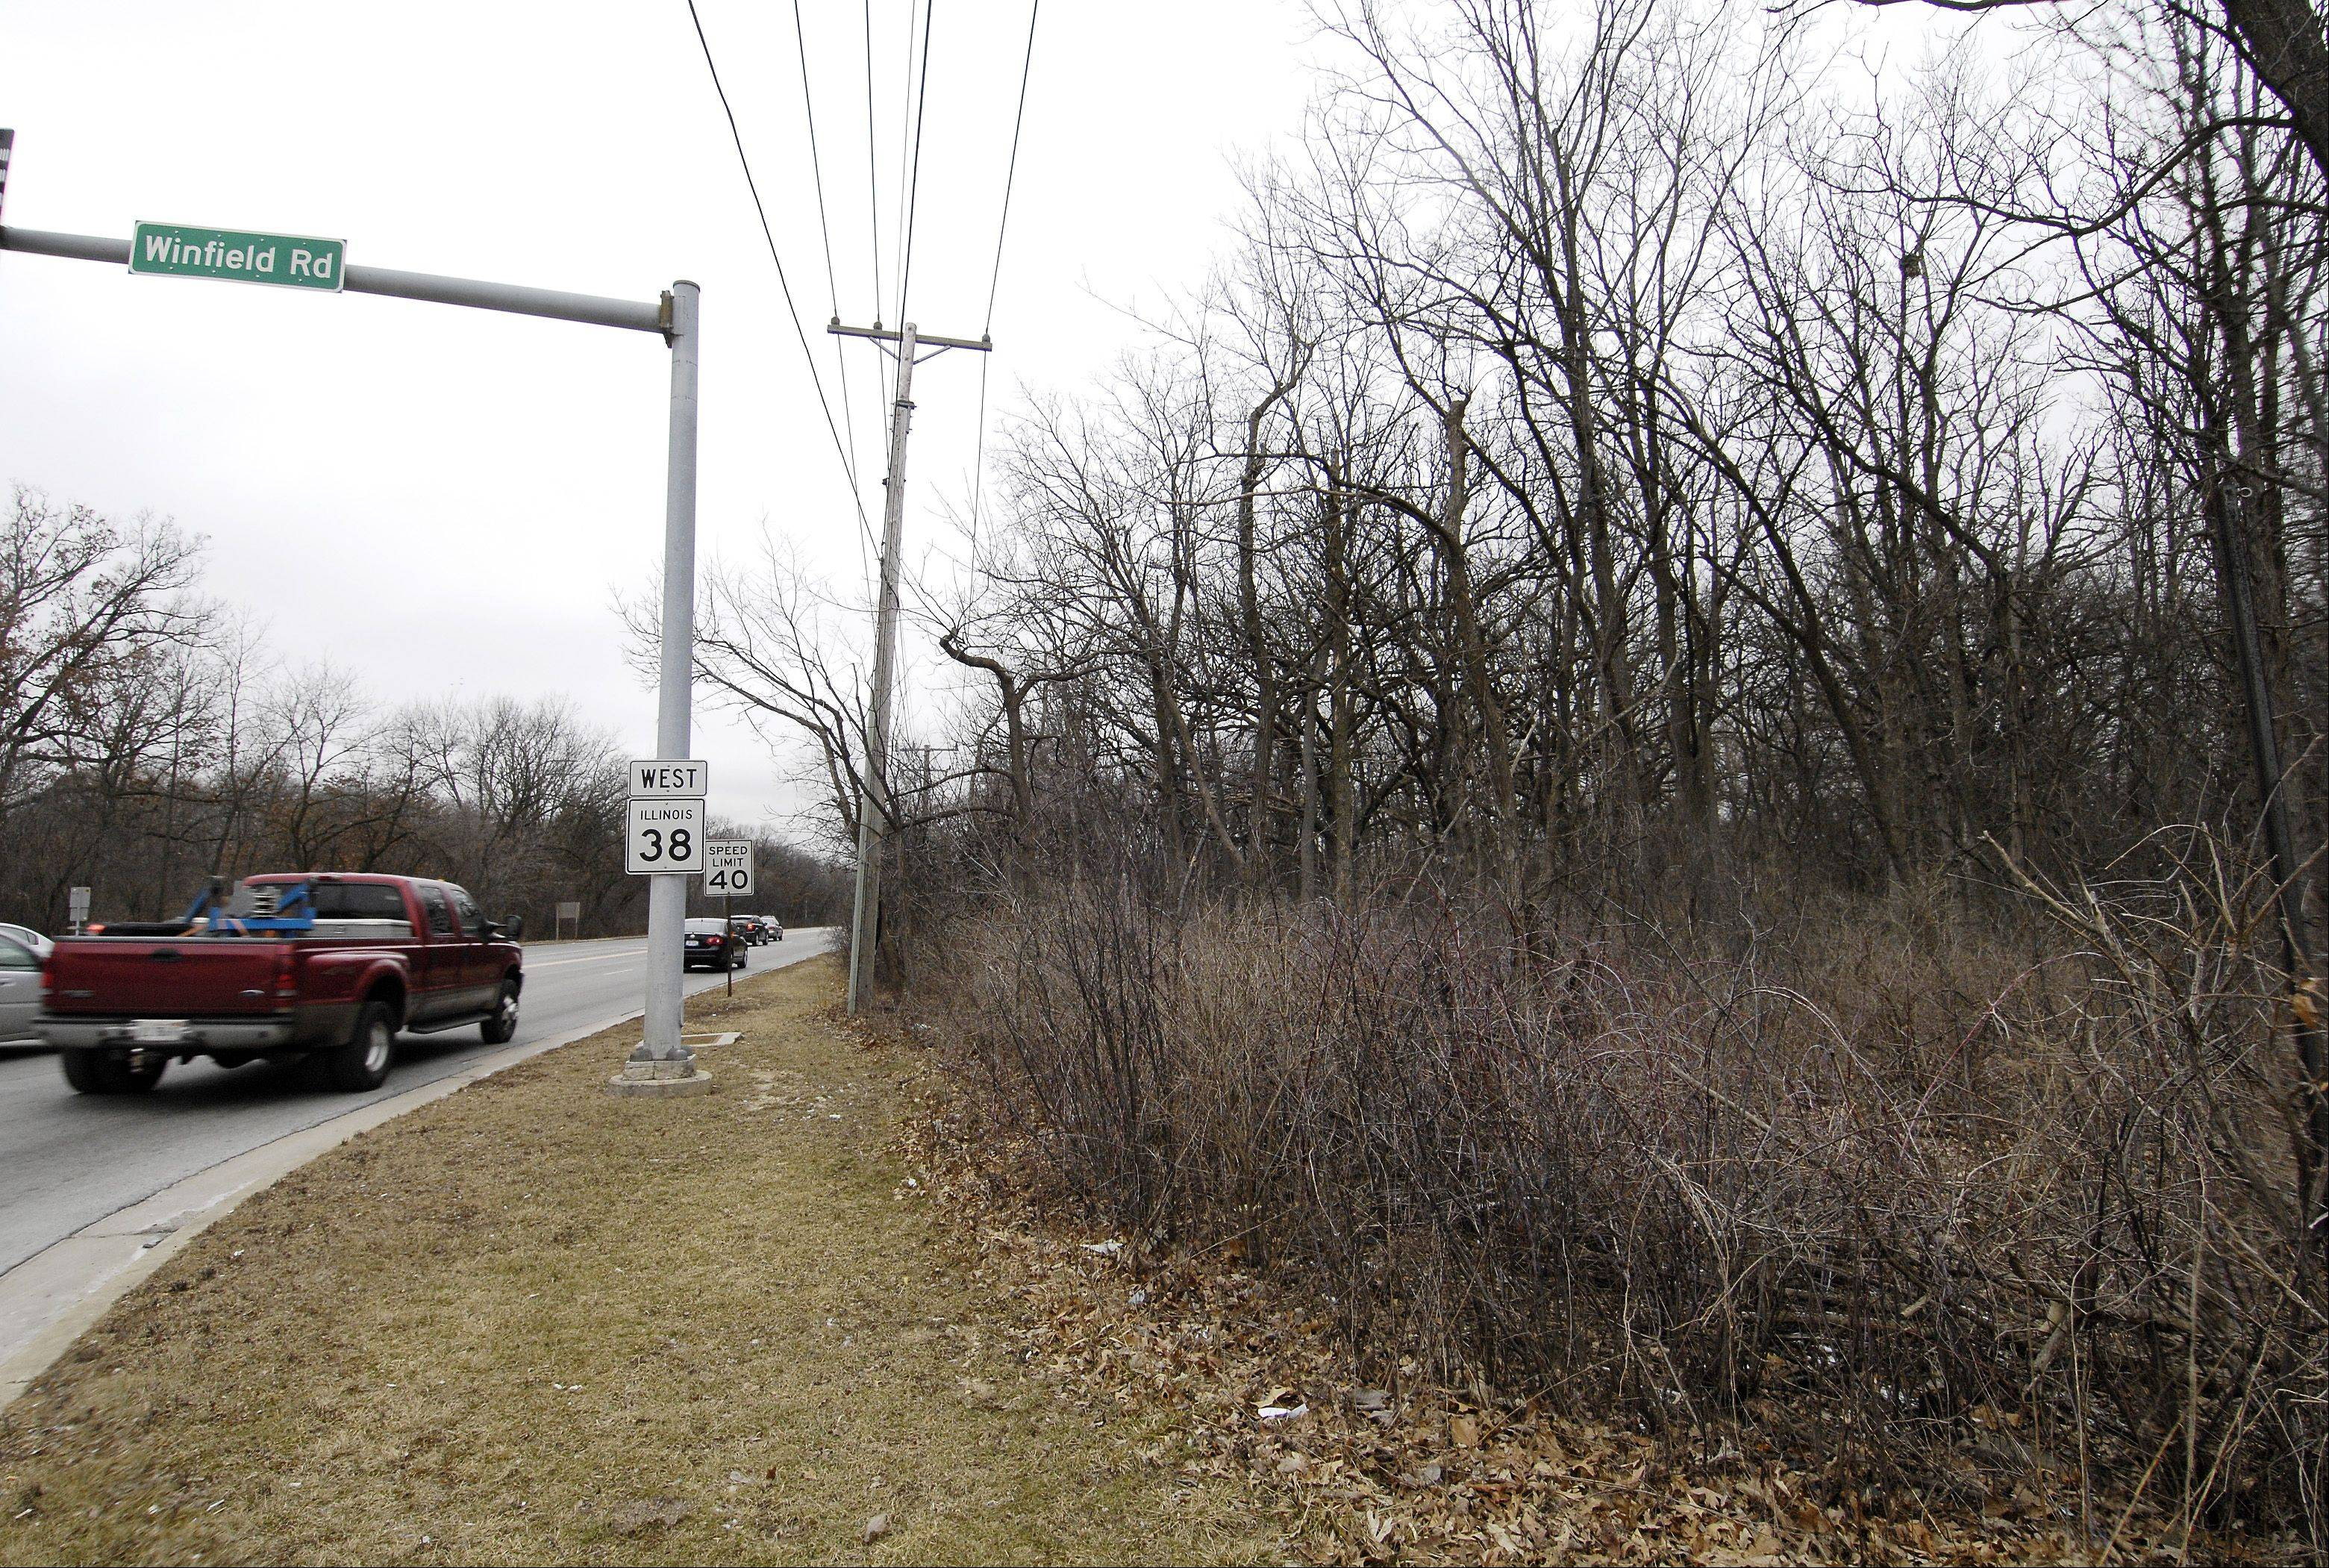 Winfield village board members on Thursday are expected to approve plans to rezone residential parcels along Roosevelt Road, west of Winfield Road. Several candidates in the village trustee race oppose the move.